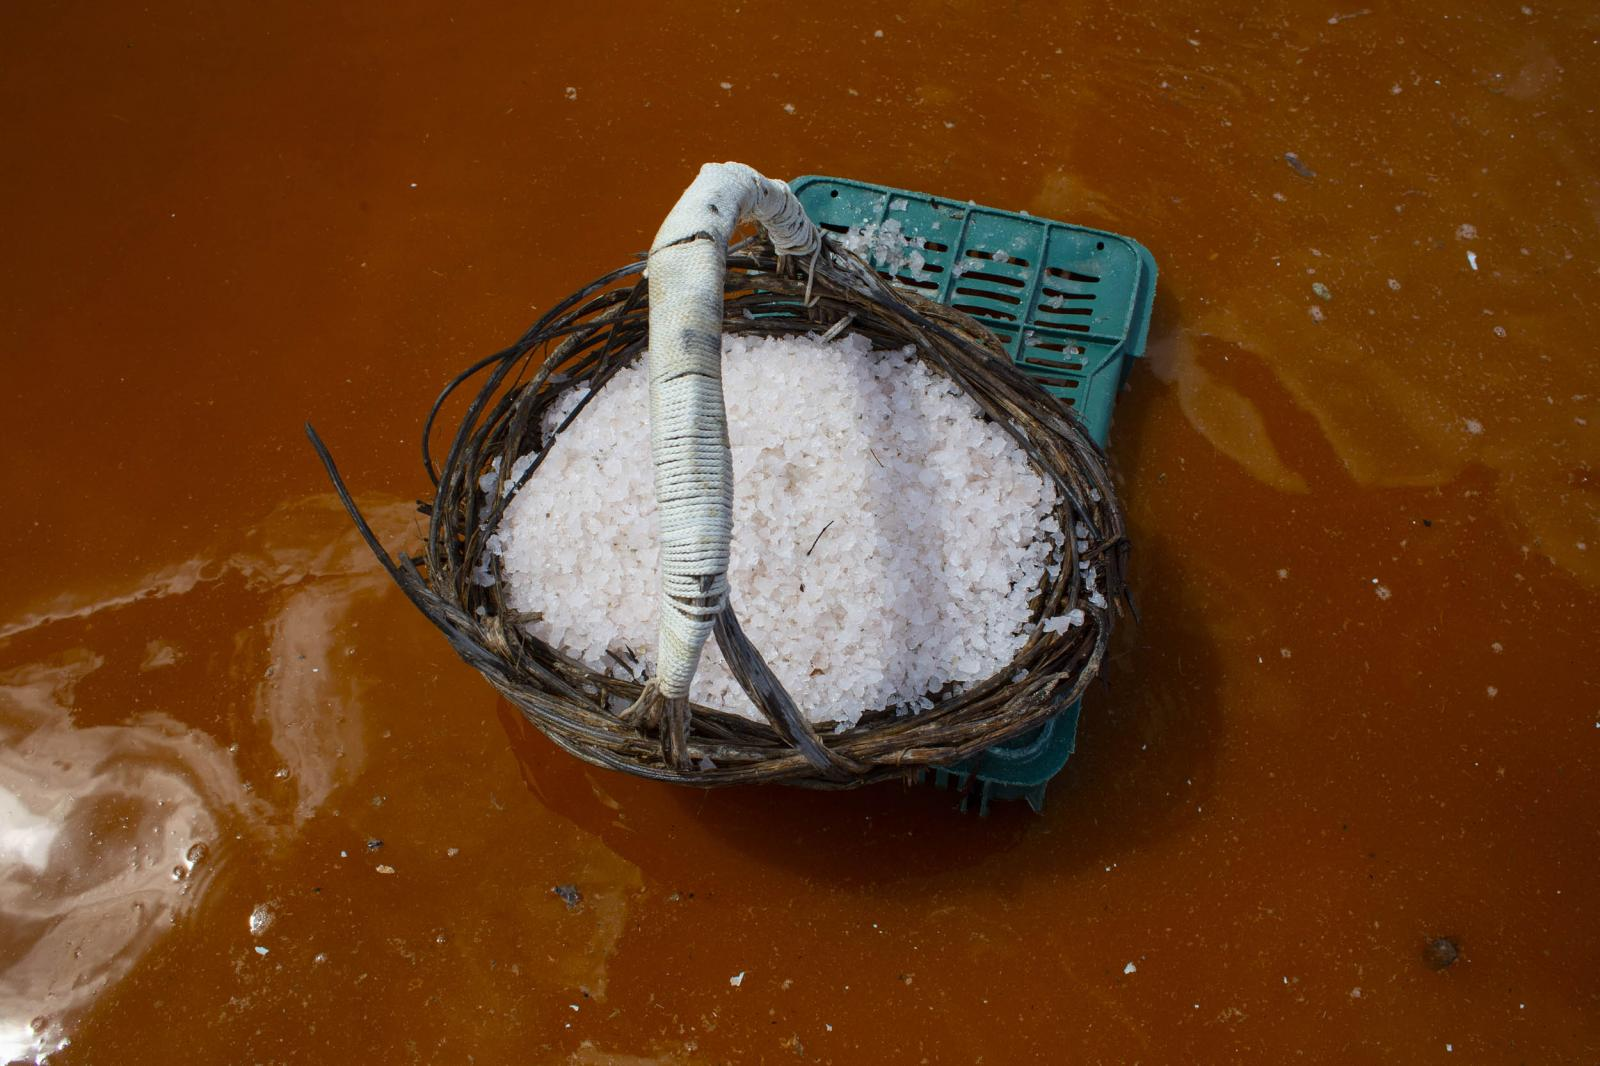 Detail of a basket with product during the salt harvest in a pond in Xtampú, Yucatan, Mexico, on Saturday, October 26, 2019. Photographer: Koral Carballo/Bloomberg